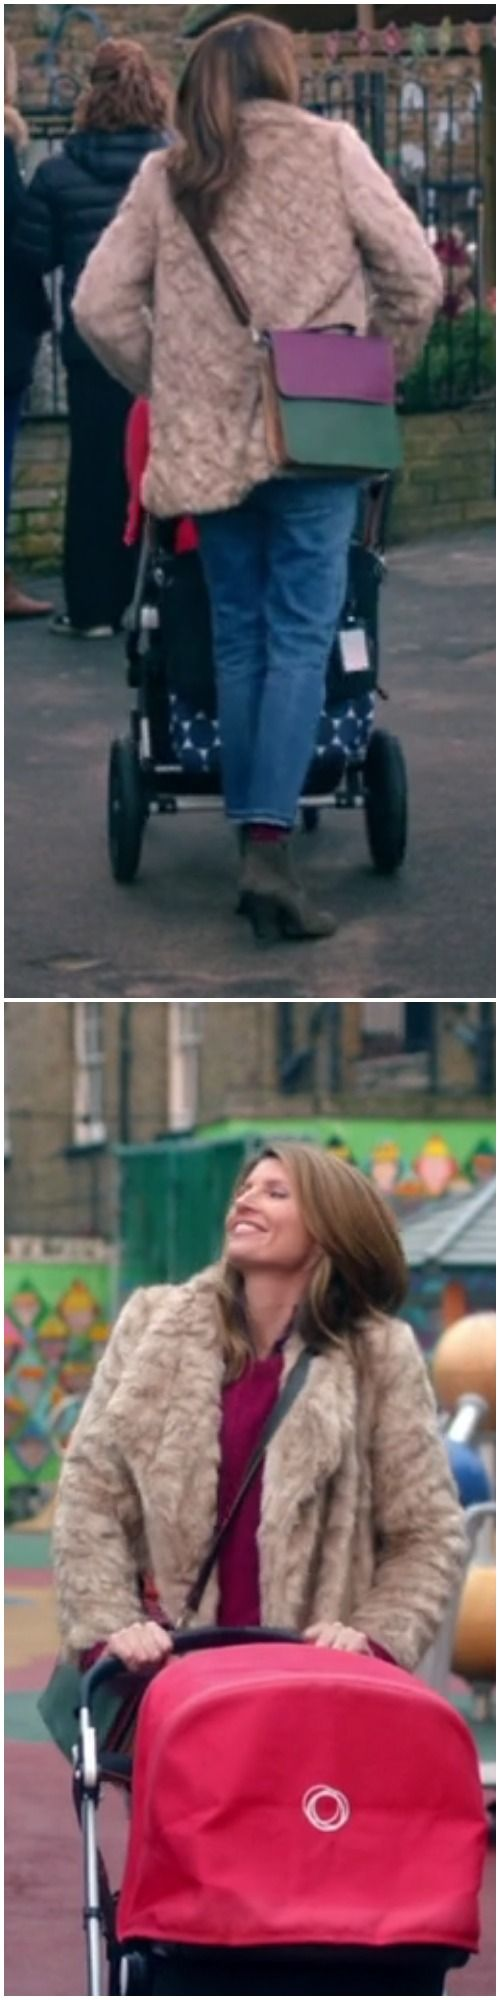 Sharon Horgan on Catastrophe: Season 3, episode 2: light brown faux fur coat, colorblocked leather crossbody briefcase, jeans, grey booties, red sweater, blue plaid shirt